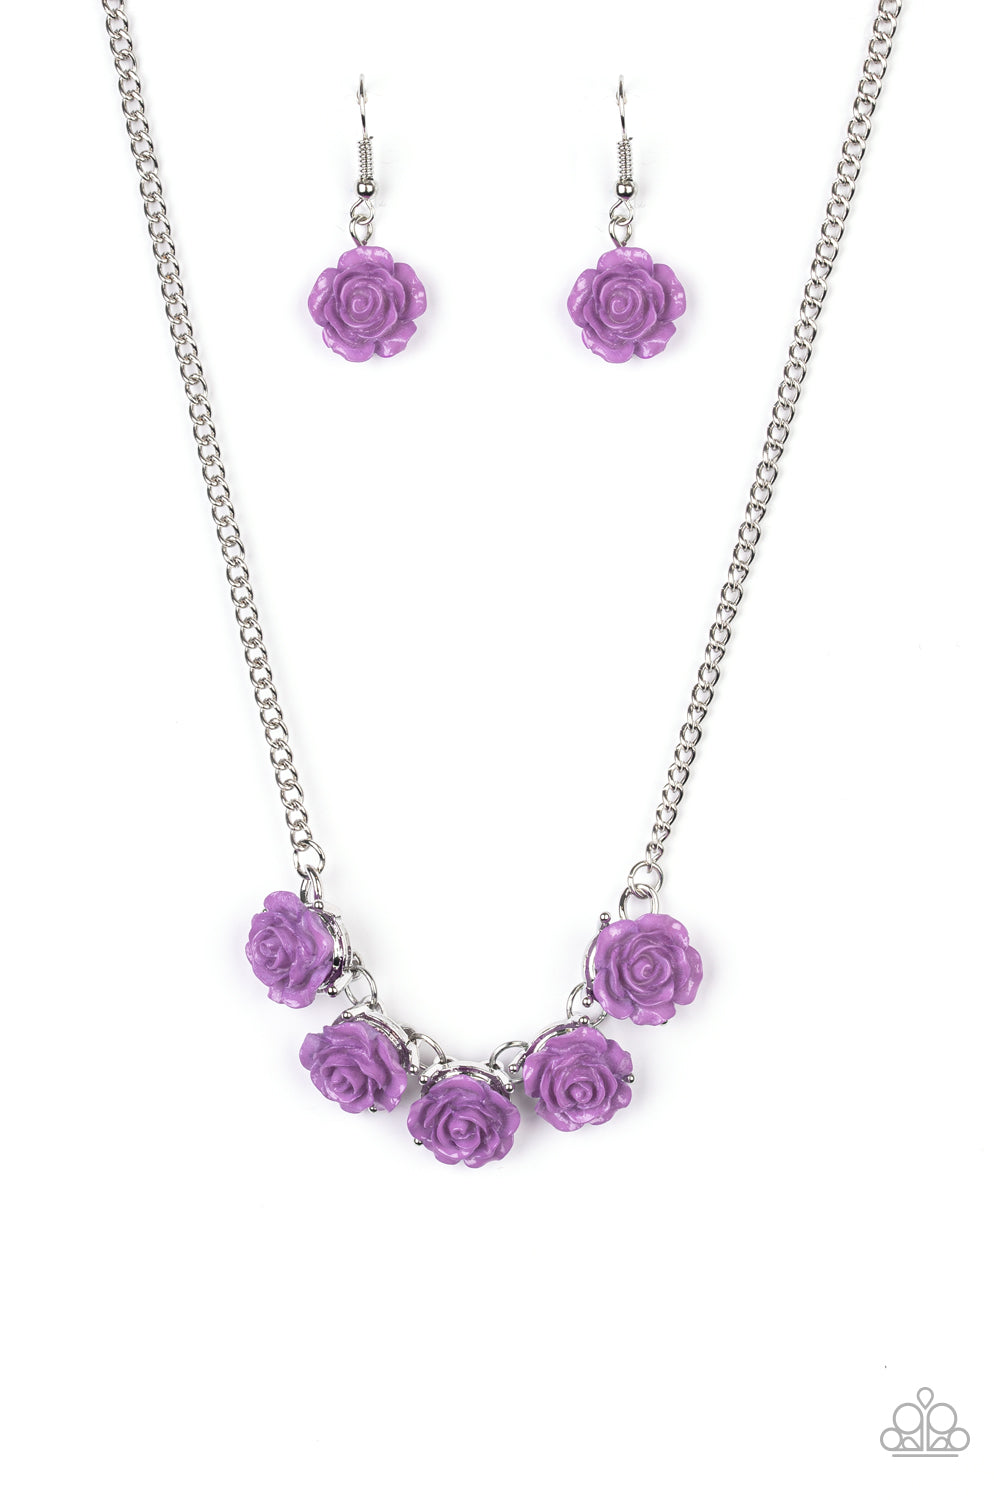 five-dollar-jewelry-garden-party-posh-purple-necklace-paparazzi-accessories